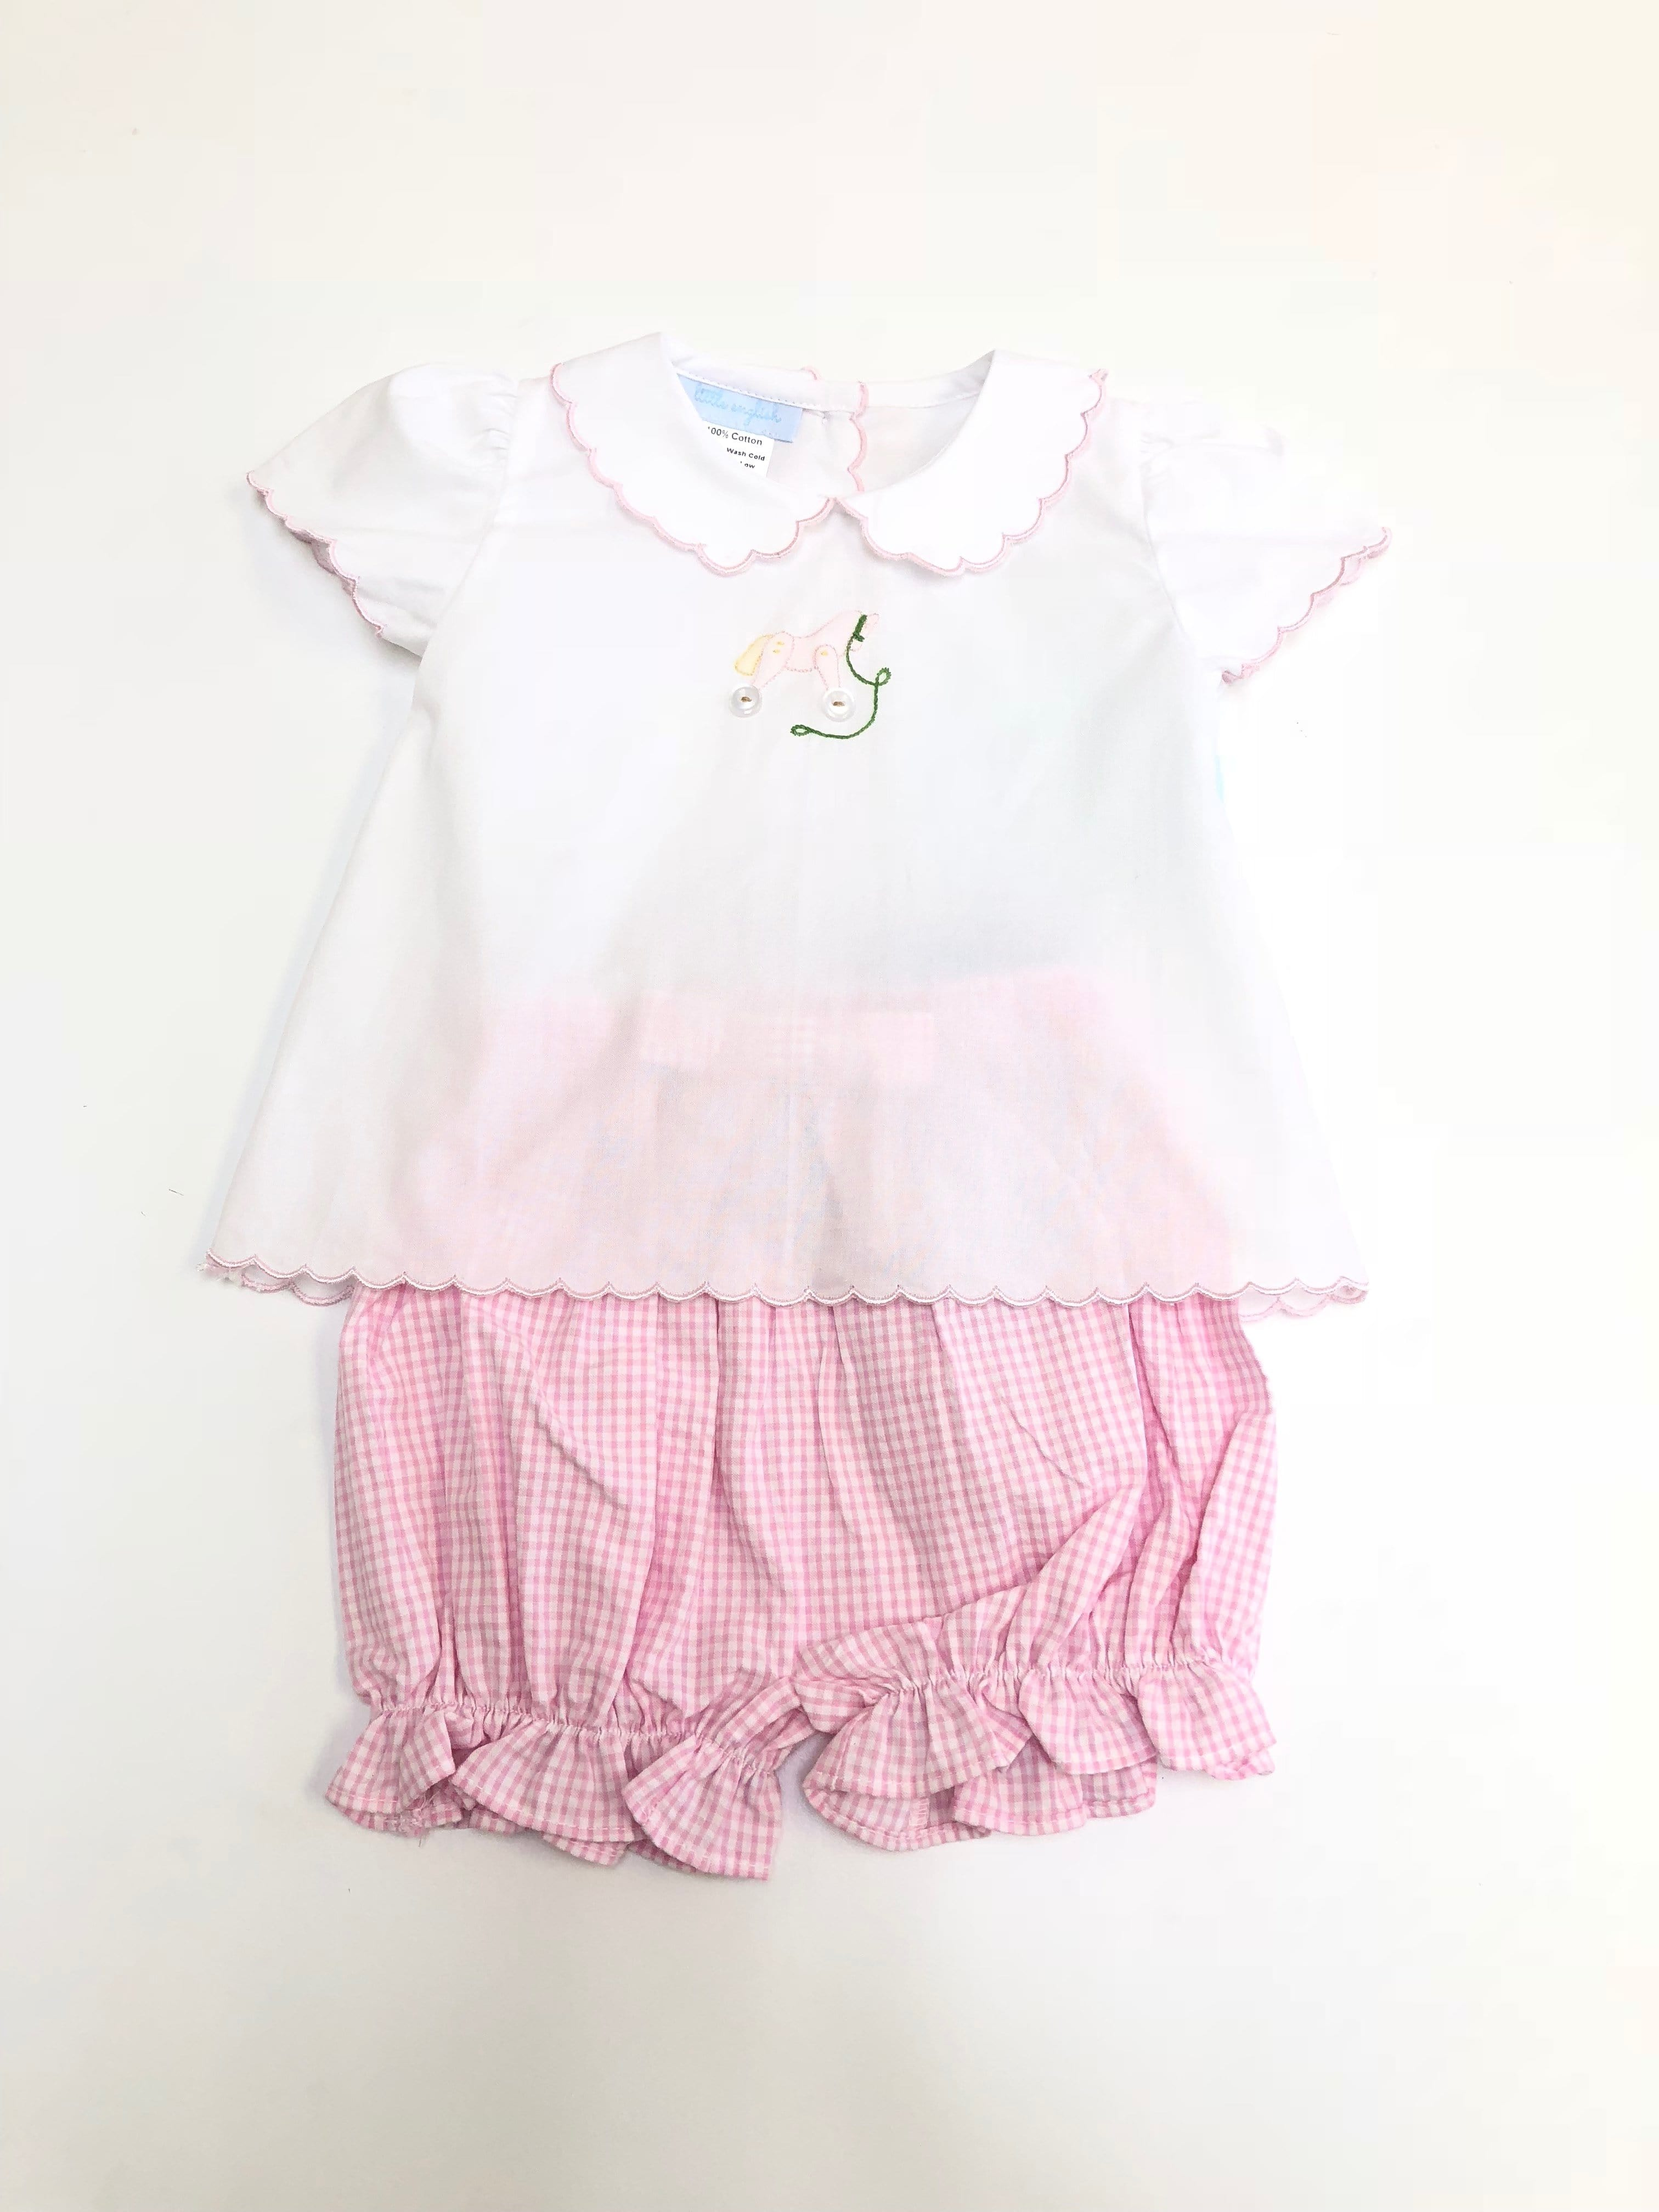 Day Blouse-Rocking Horse, Little English, Little English, classic children's clothing, preppy children's clothing, little English clothing, classic baby clothing, traditional children's clothing, children's clothing, baby clothing